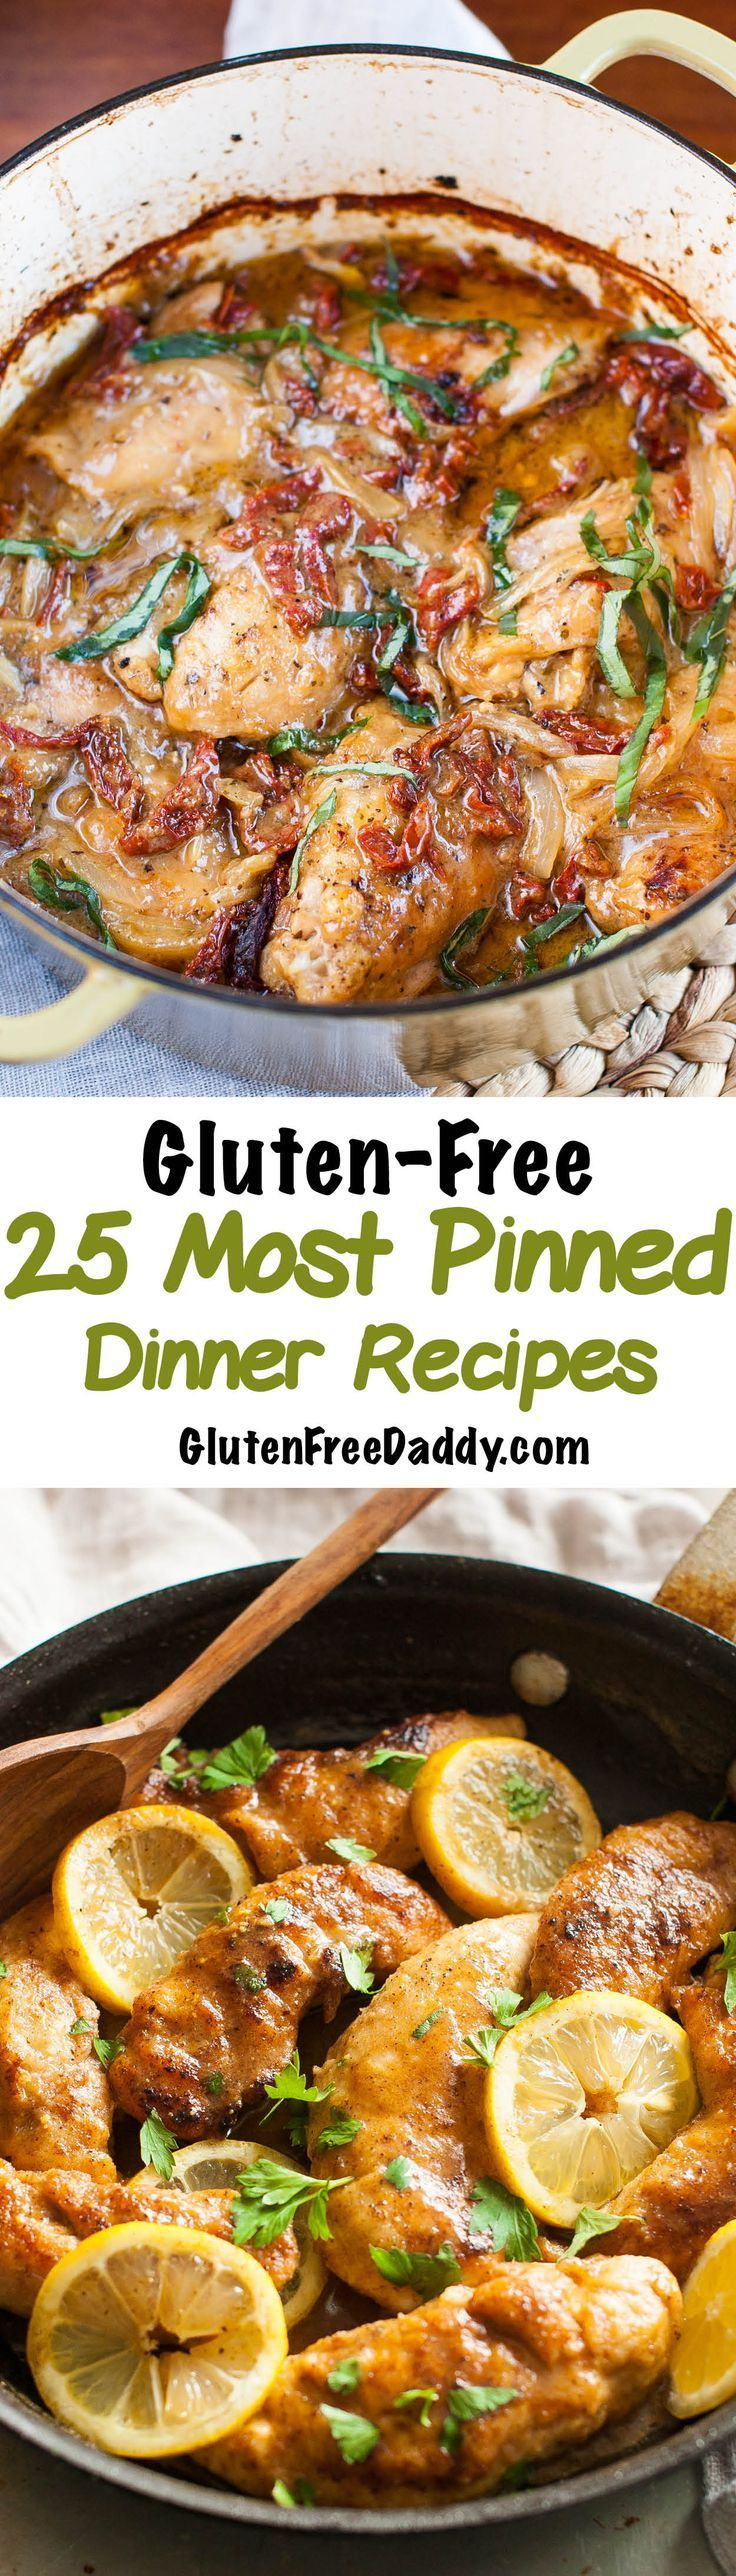 All These Gluten Free Dinner Recipes Have Been Pinned At Least 50000 Times They